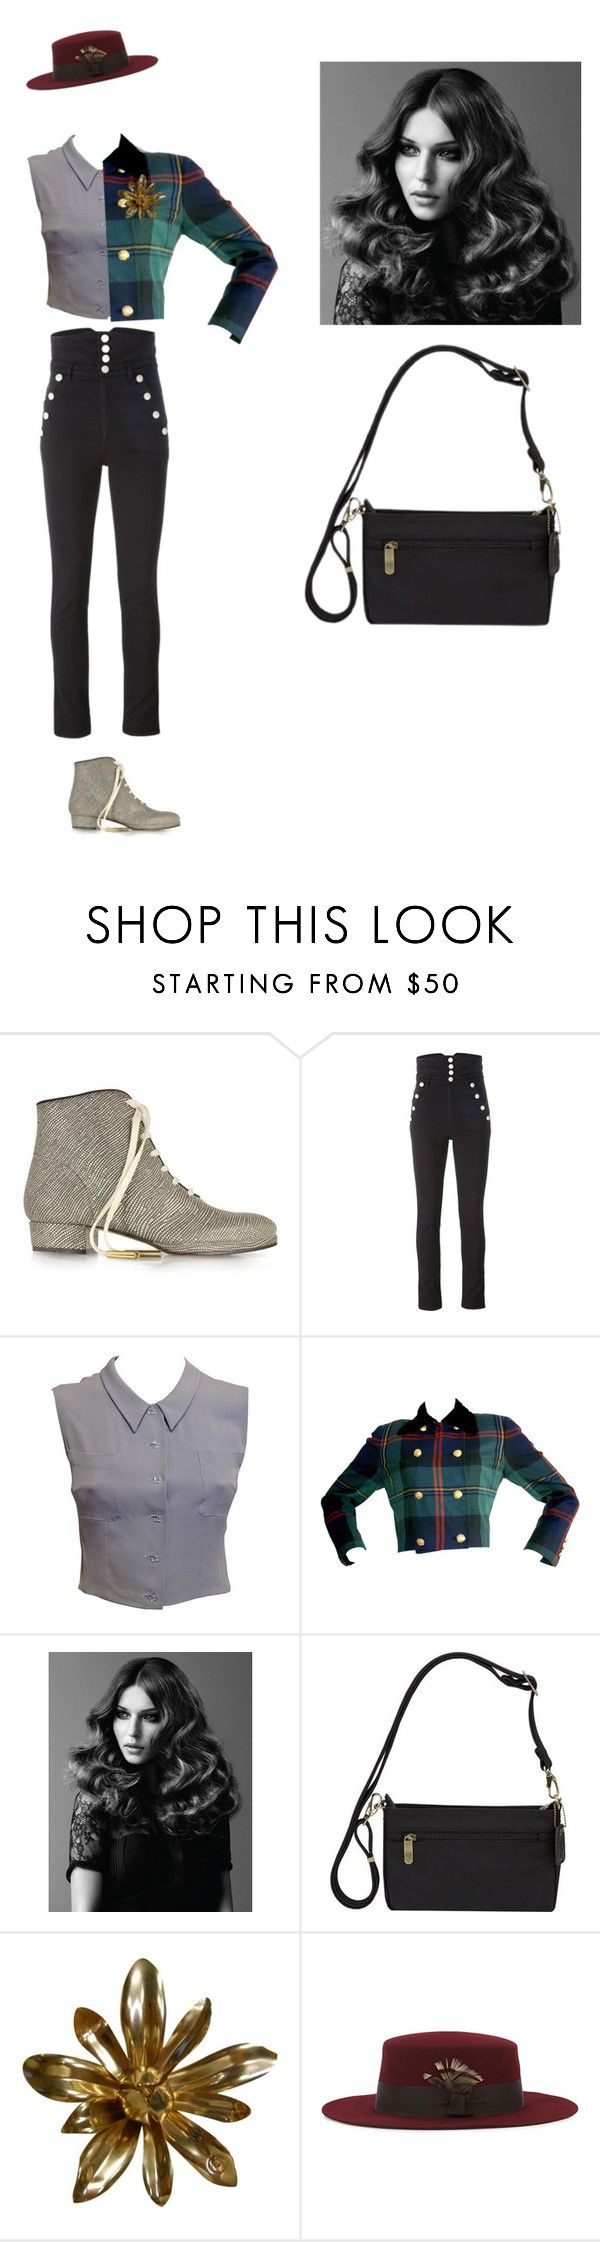 """""""Untitled #212"""" by amory-eyre ❤ liked on Polyvore featuring Zoe Lee, Isabel Marant, Chanel, Ralph Lauren, BaByliss Pro, Travelon and Christys'"""